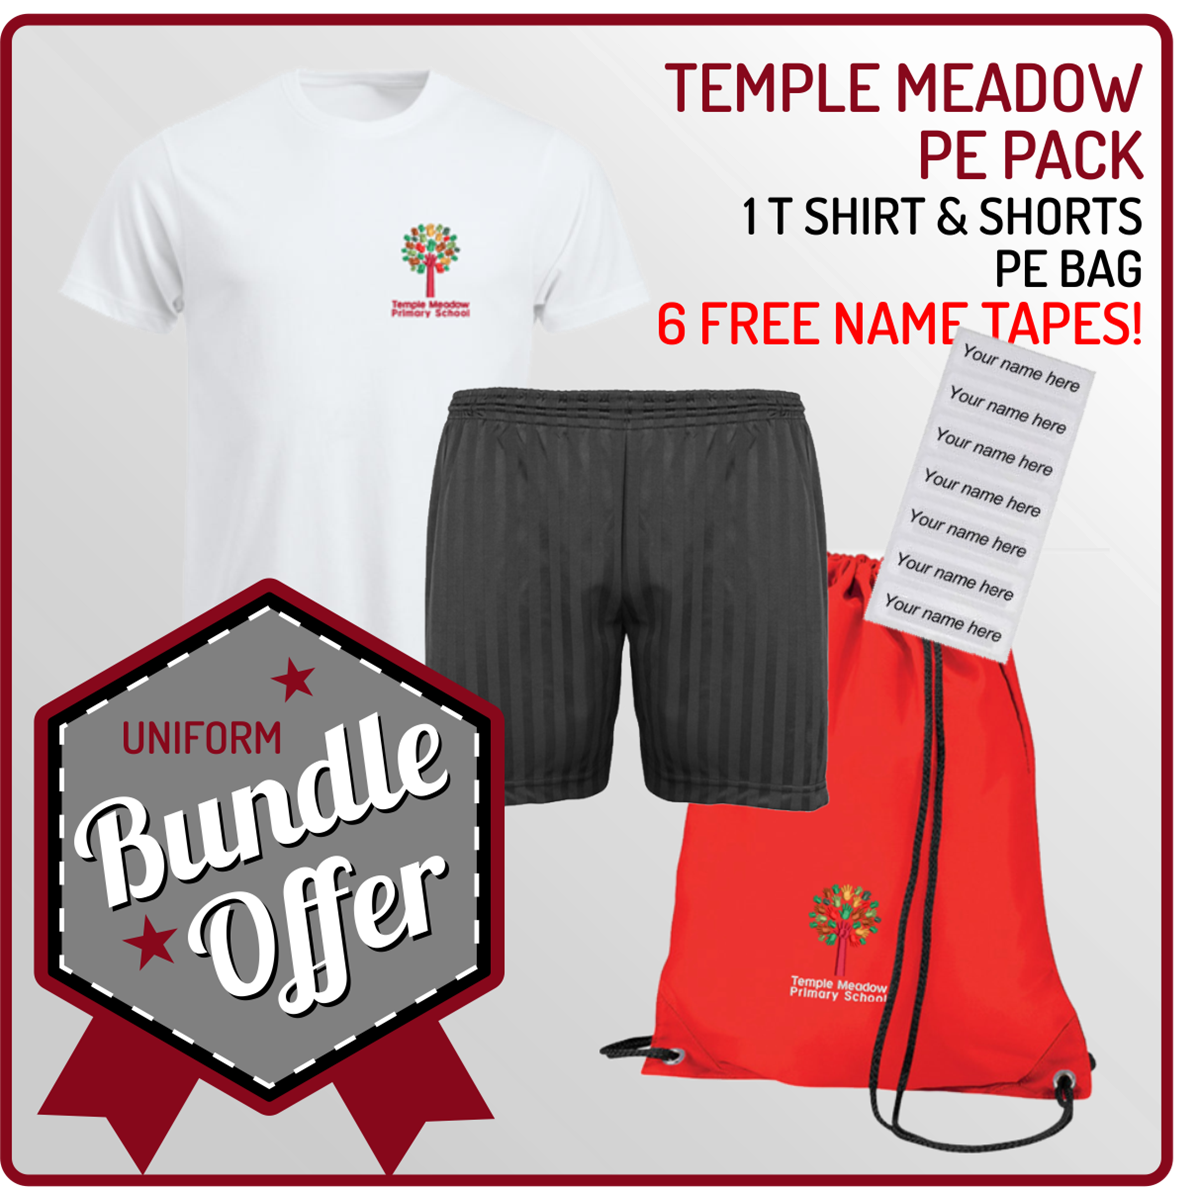 Bundle offer of T Shirt, Shorts and a PE Bag! - includes FREE NAMES TAPES!